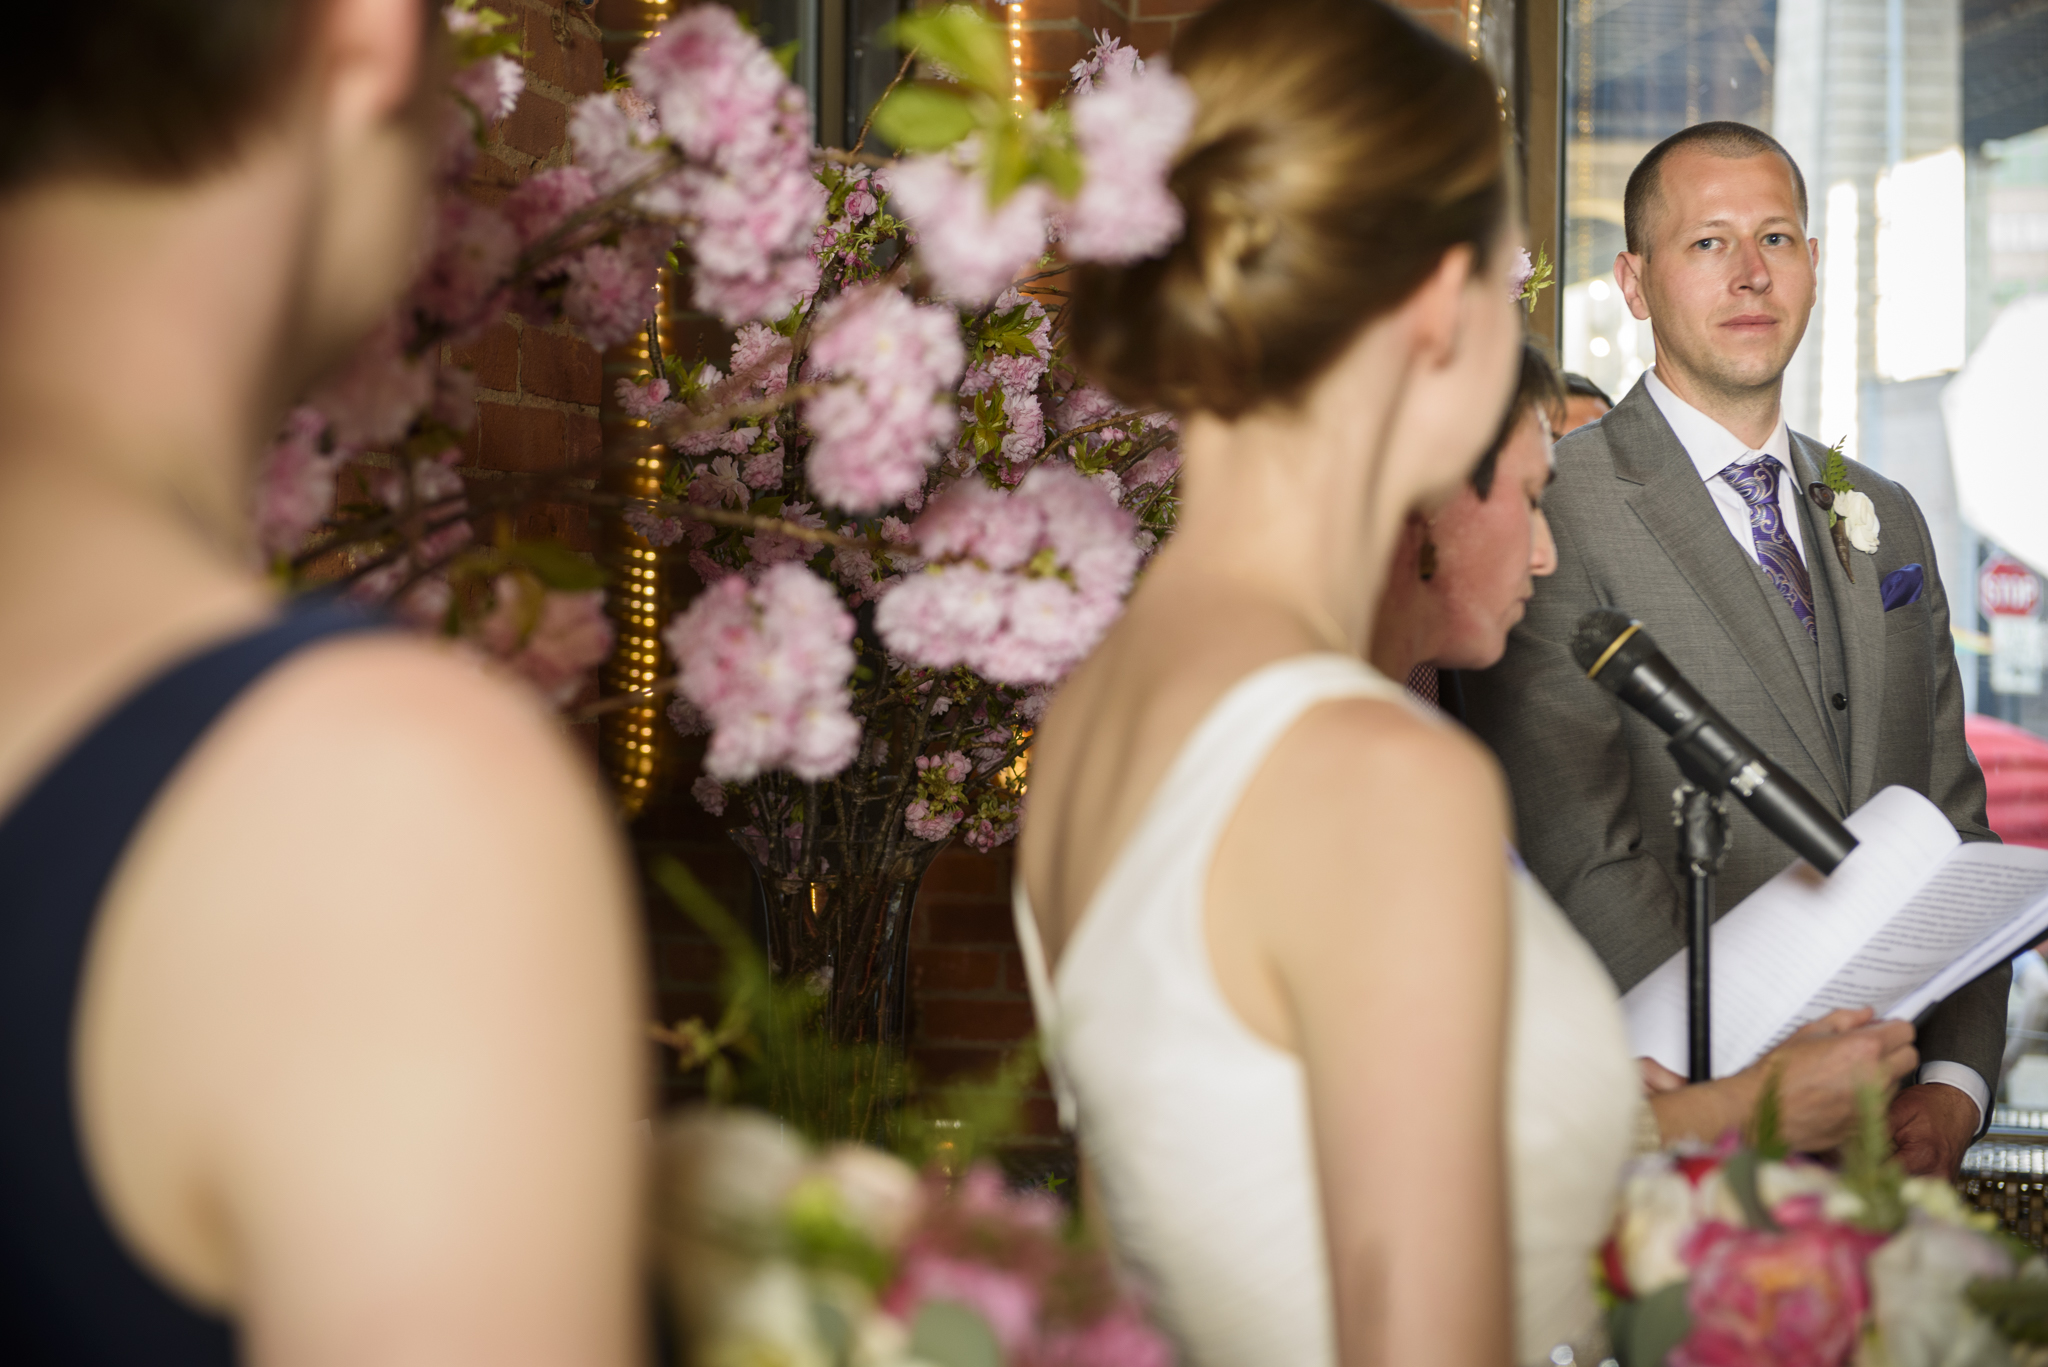 Rebekah&Halvar_Wedding by Romina Hendlin_007.jpg